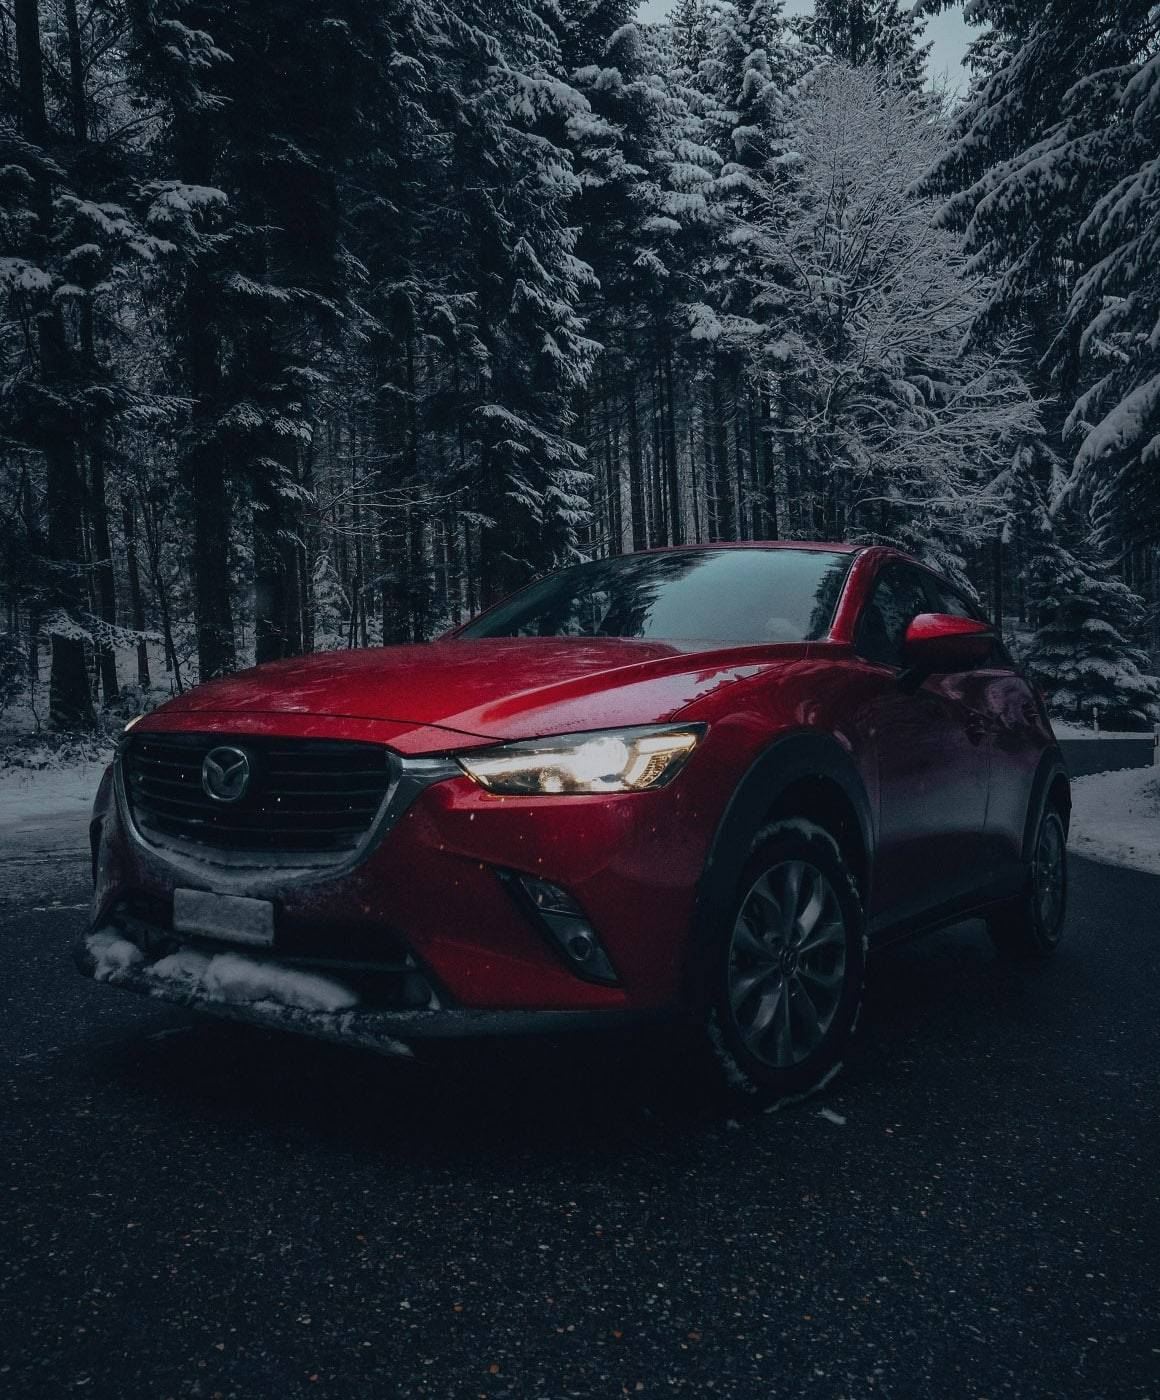 Compare Mazda insurance costs for all models